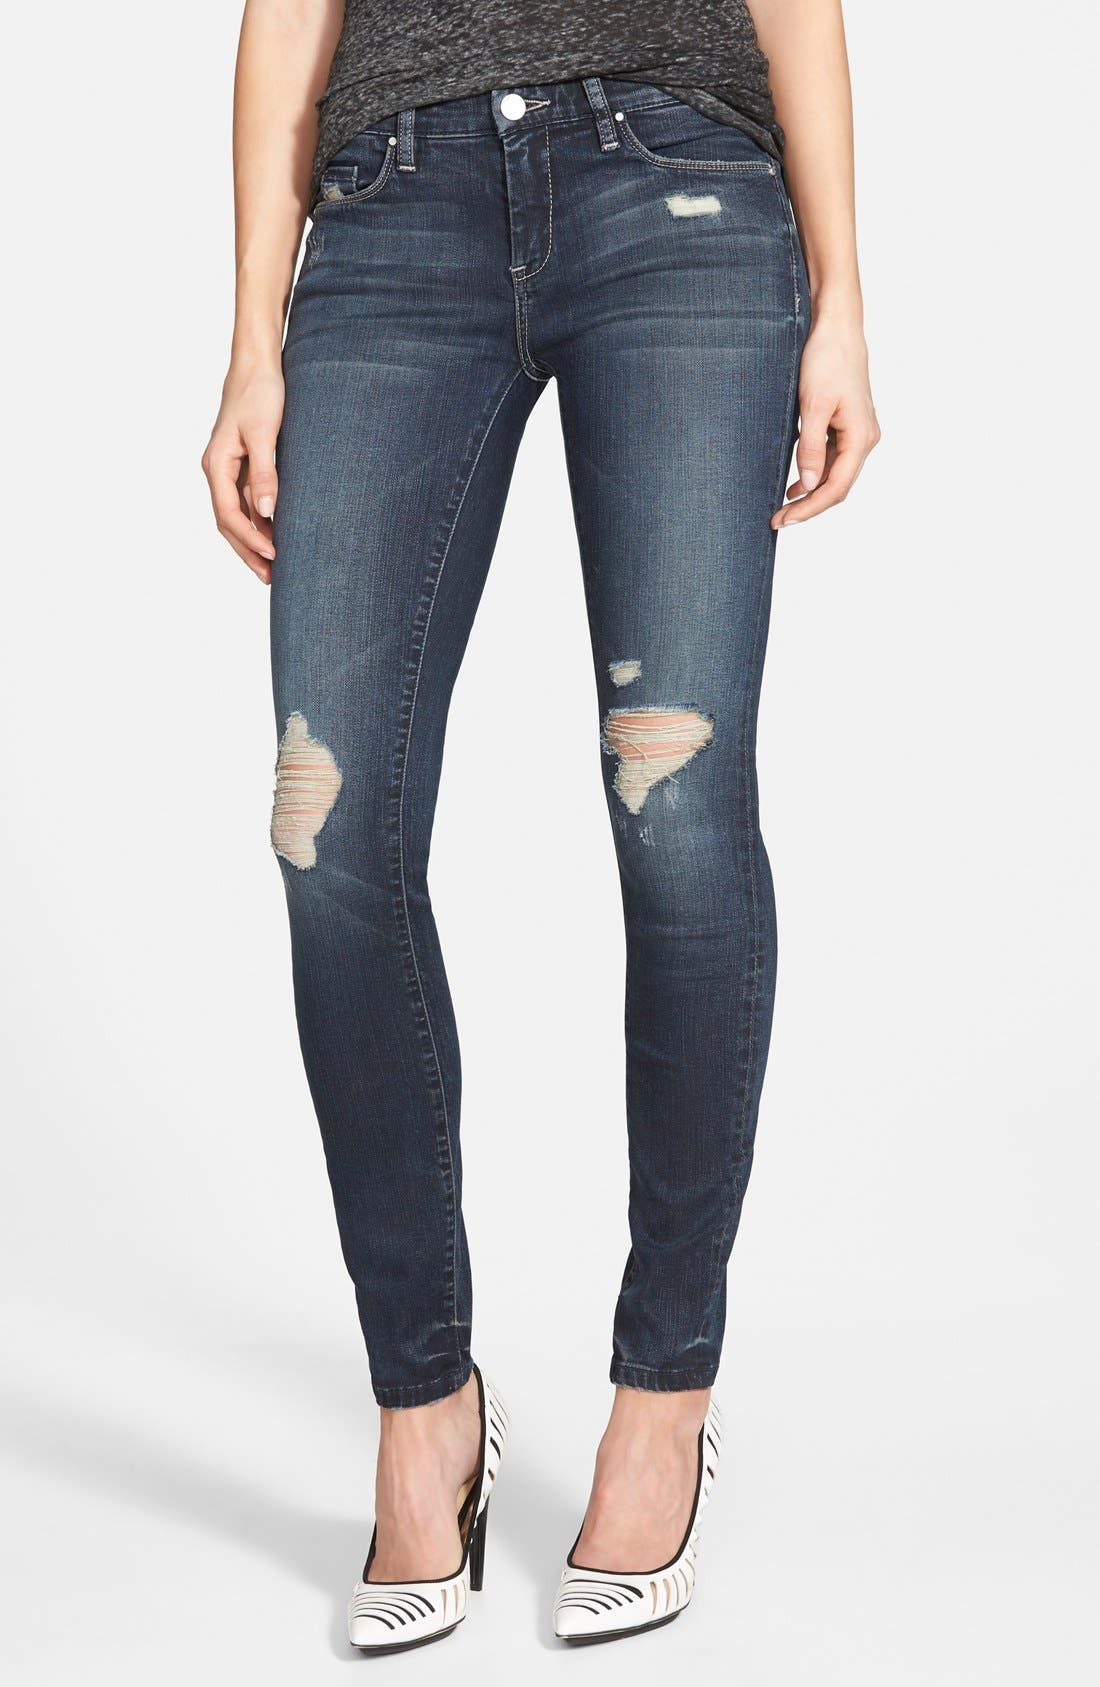 Alternate Image 1 Selected - BLANKNYC 'Hearing Voices' Skinny Jeans (Blue)